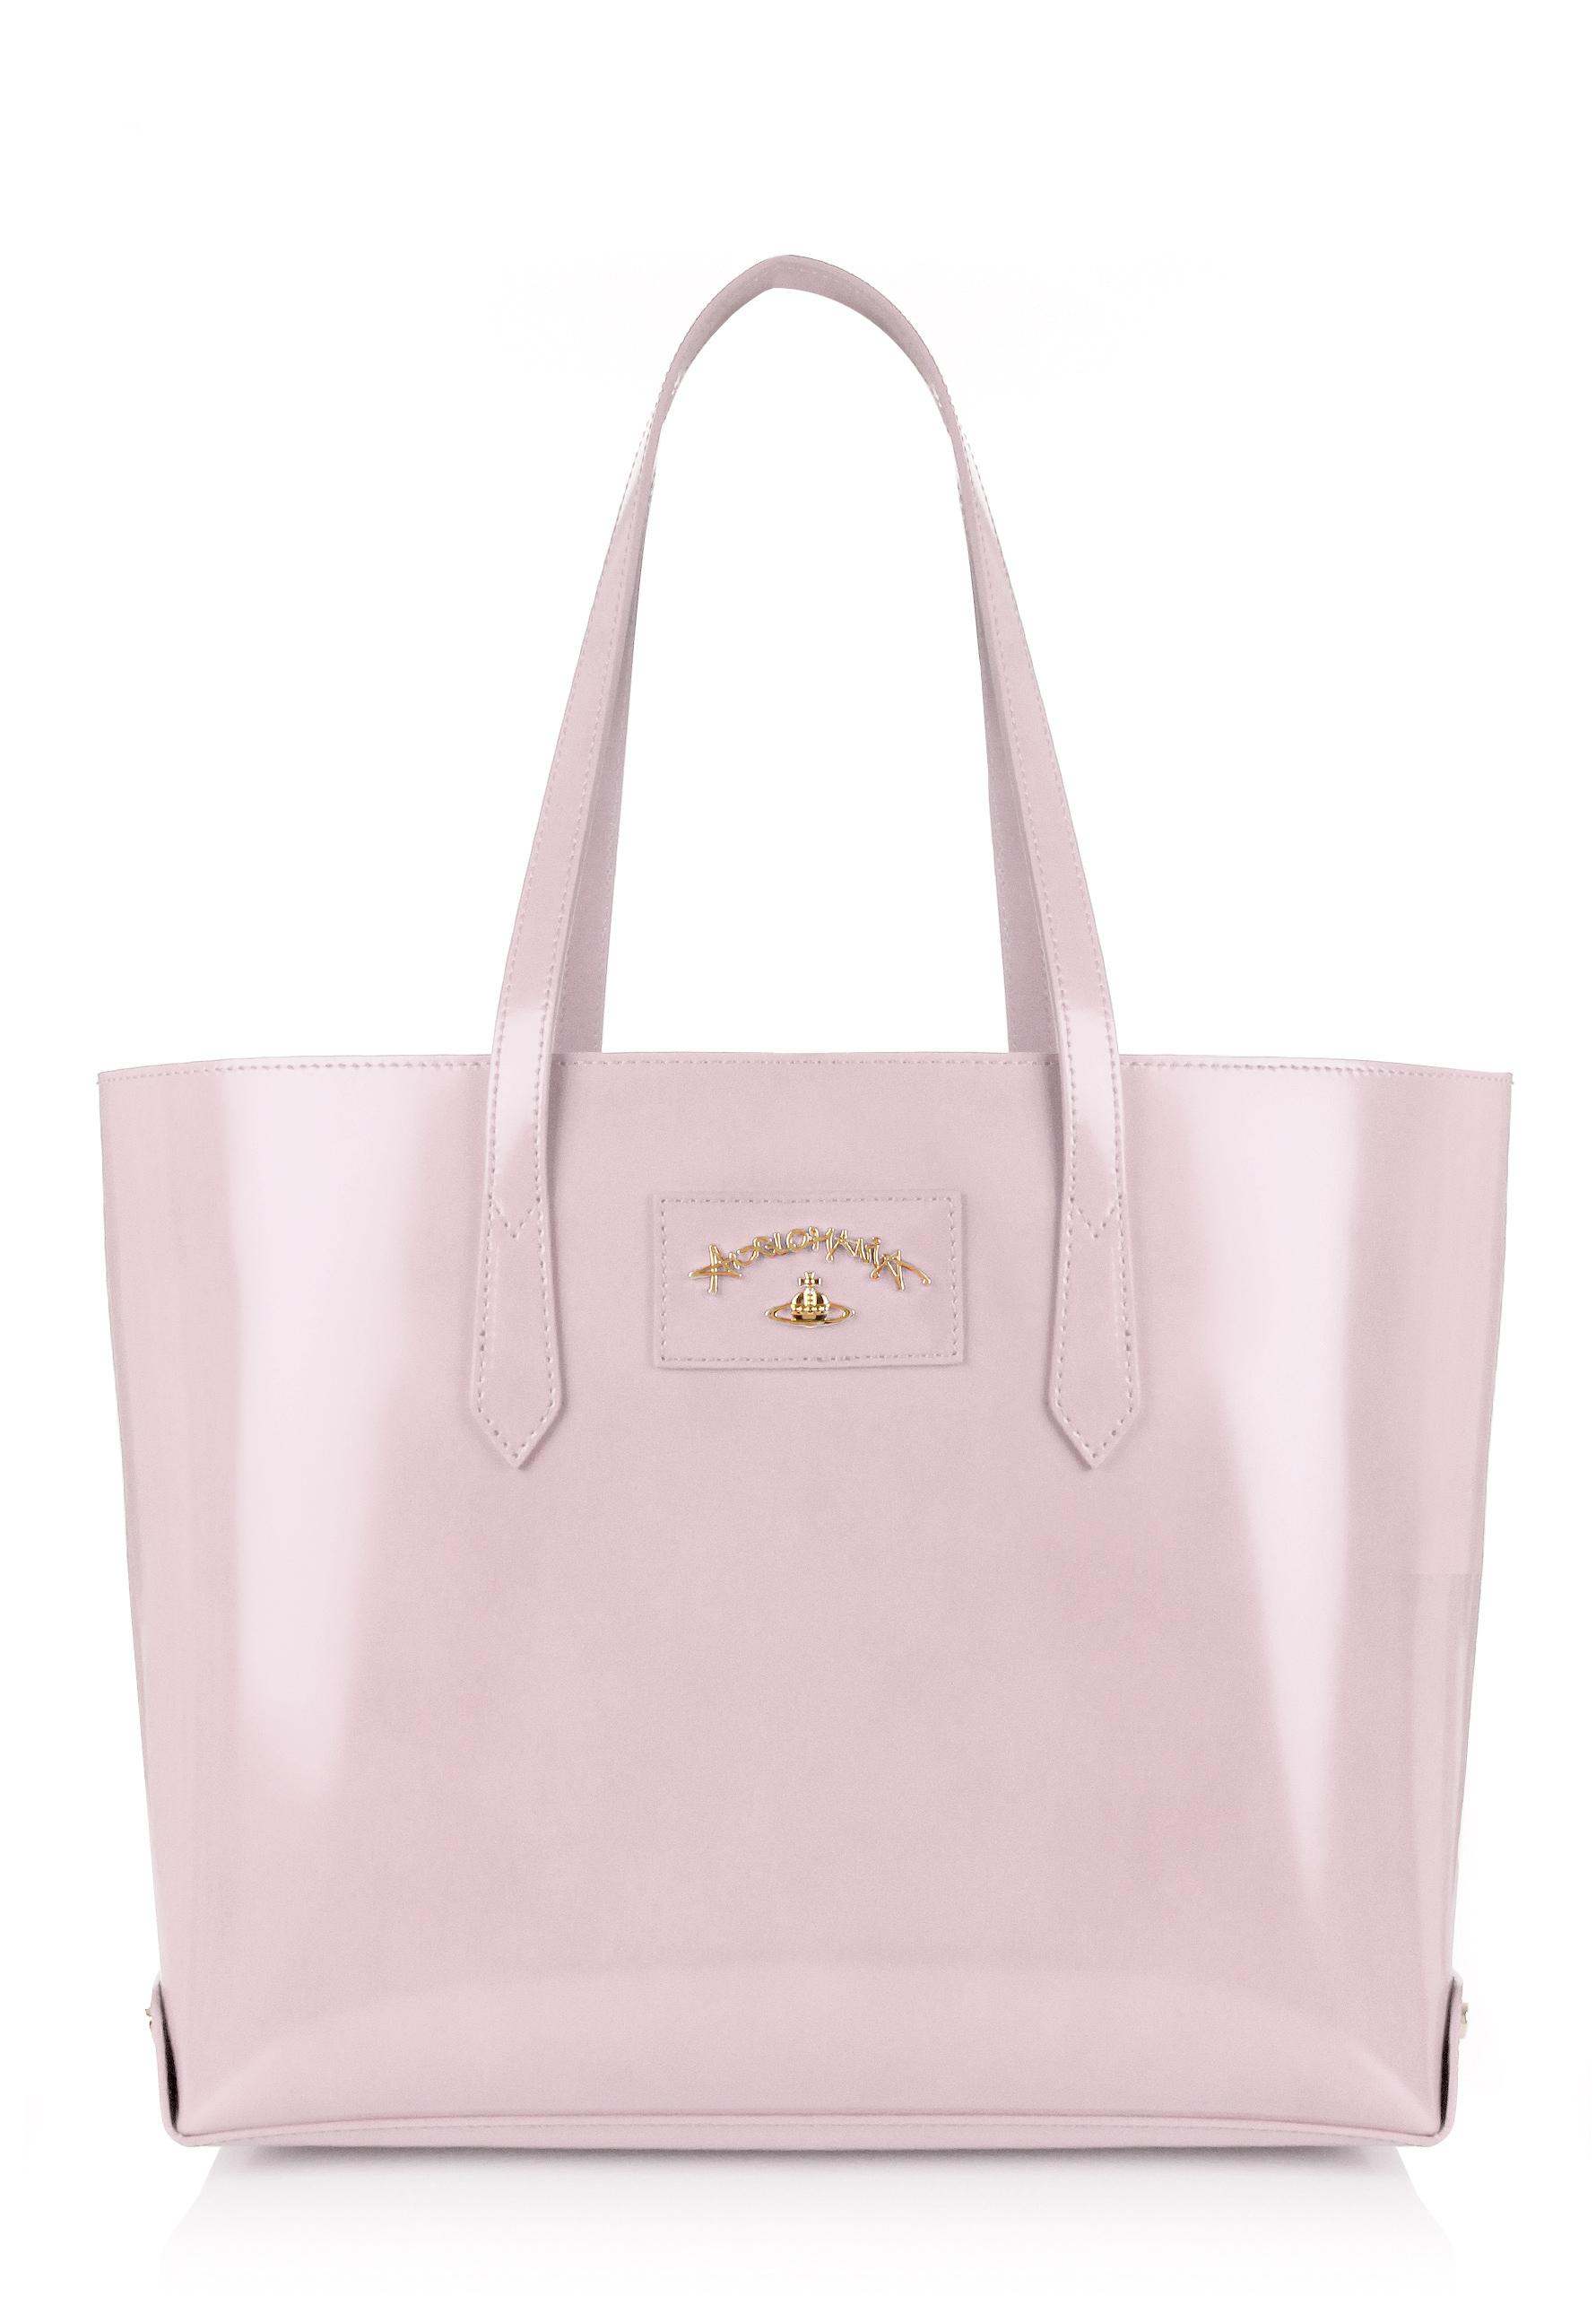 4581bbb817d Vivienne Westwood Newcastle 7251 Large Shopping Bag Rose in Pink - Lyst